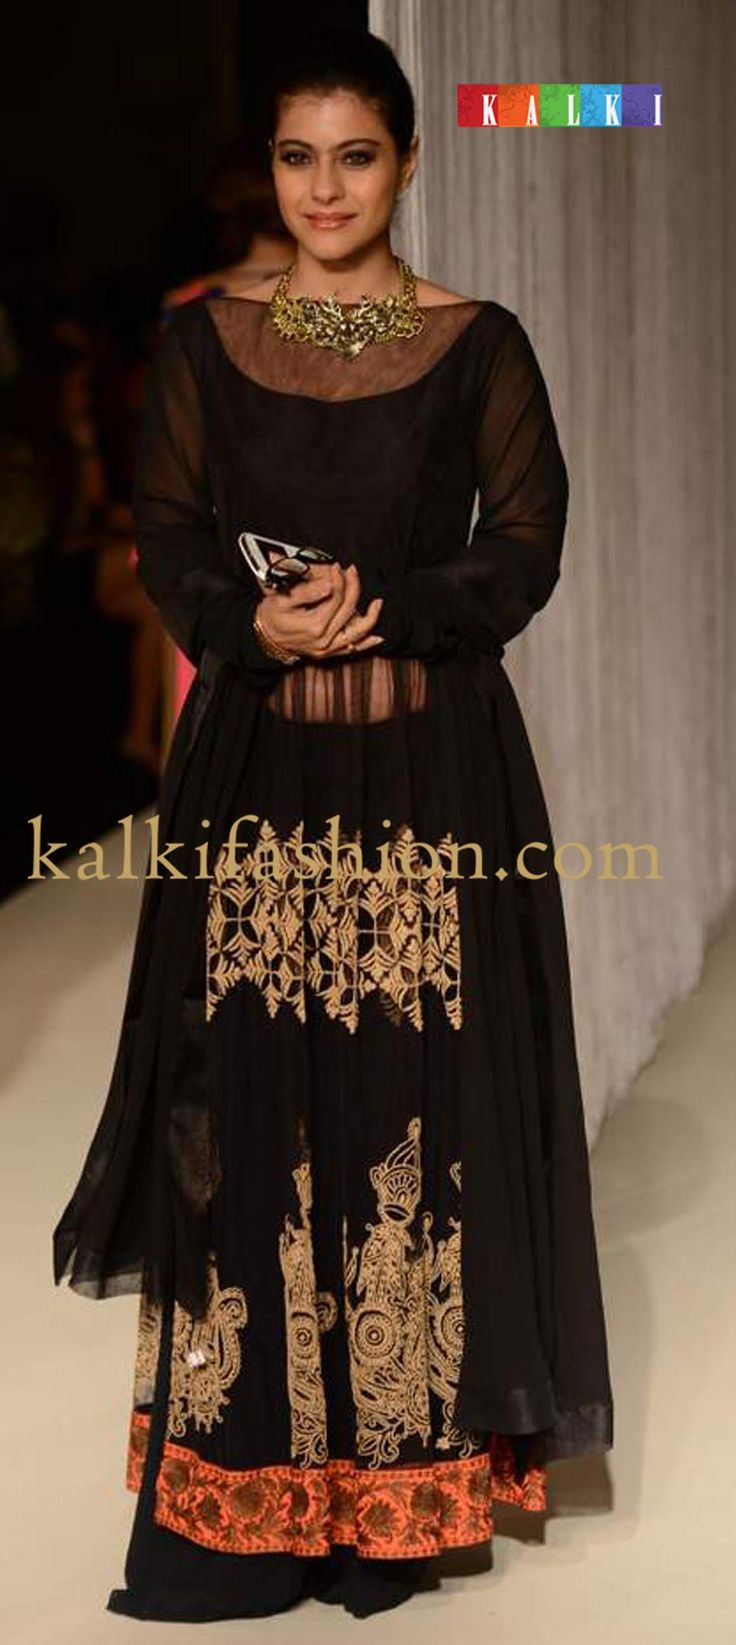 http://www.kalkifashion.com/designers/manish-malhotra.html  kajol-in-black-floor-length-anarkali-suit-by-manish-malhotra-at-lakme-fashion-week-winter-festival-2013